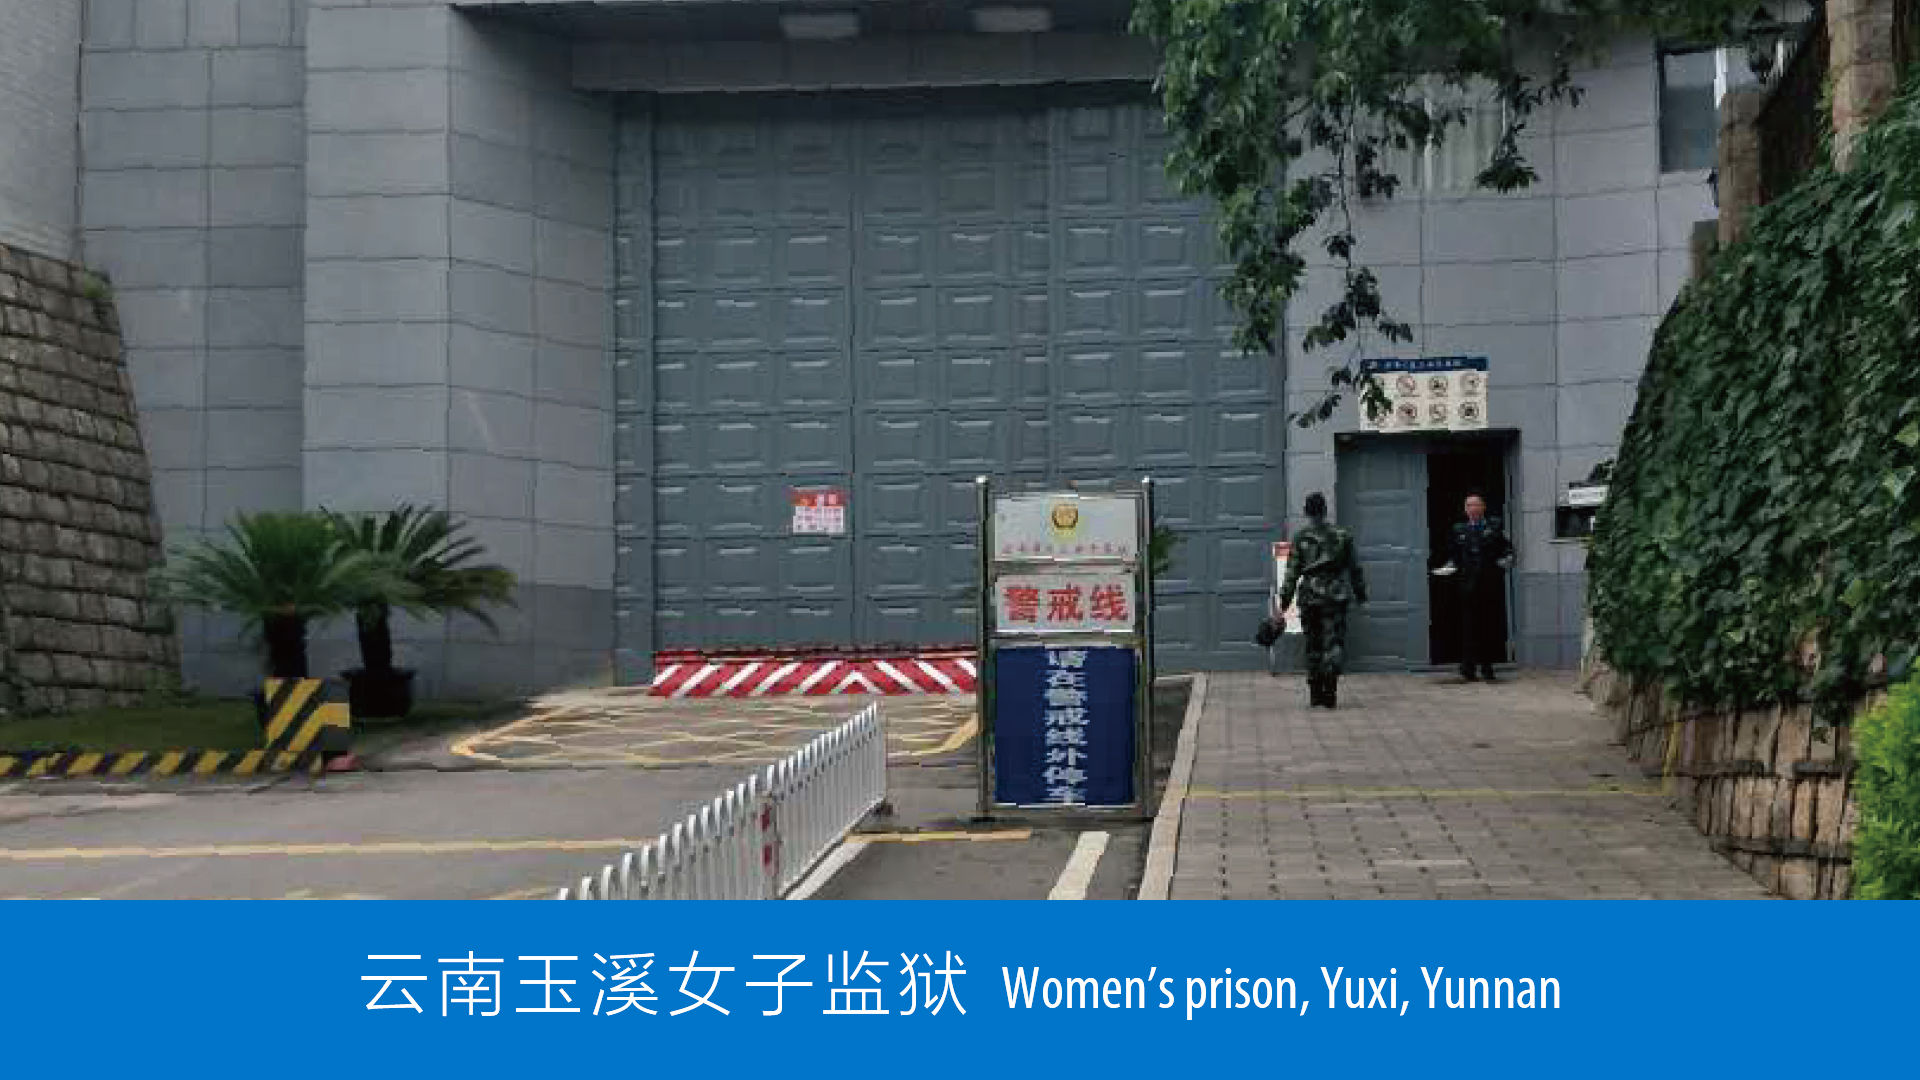 Road blocker - Prison - Yuxi